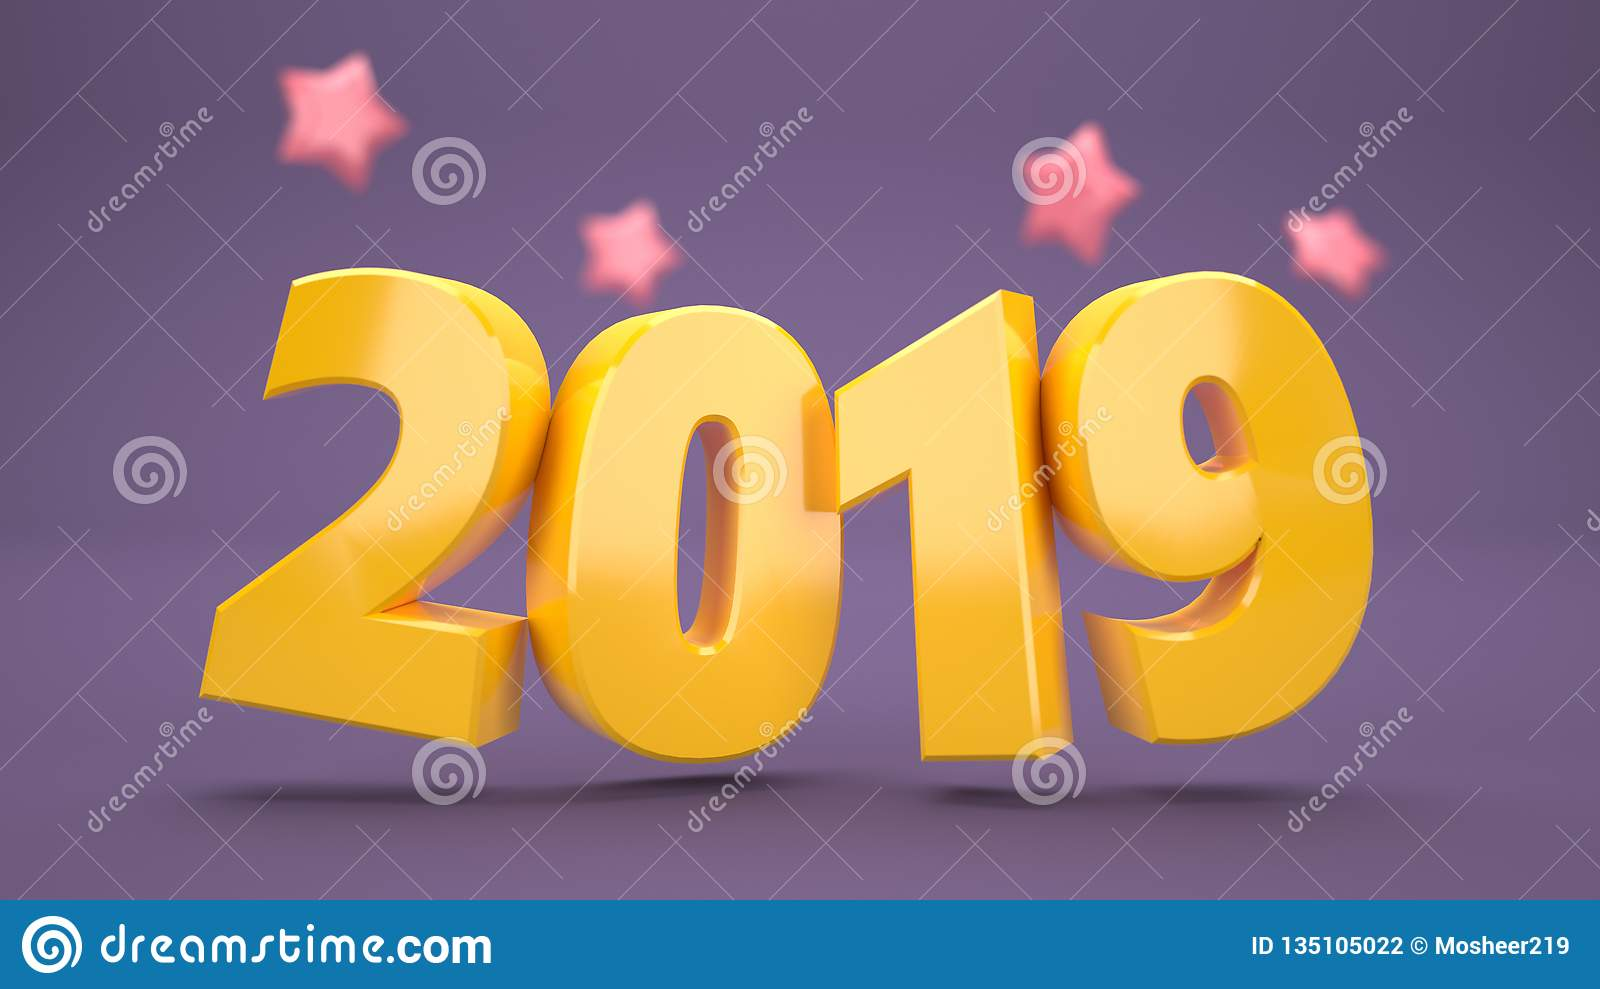 4k Rialstic 3d New Year Wallpaper 2019 Stock Illustration